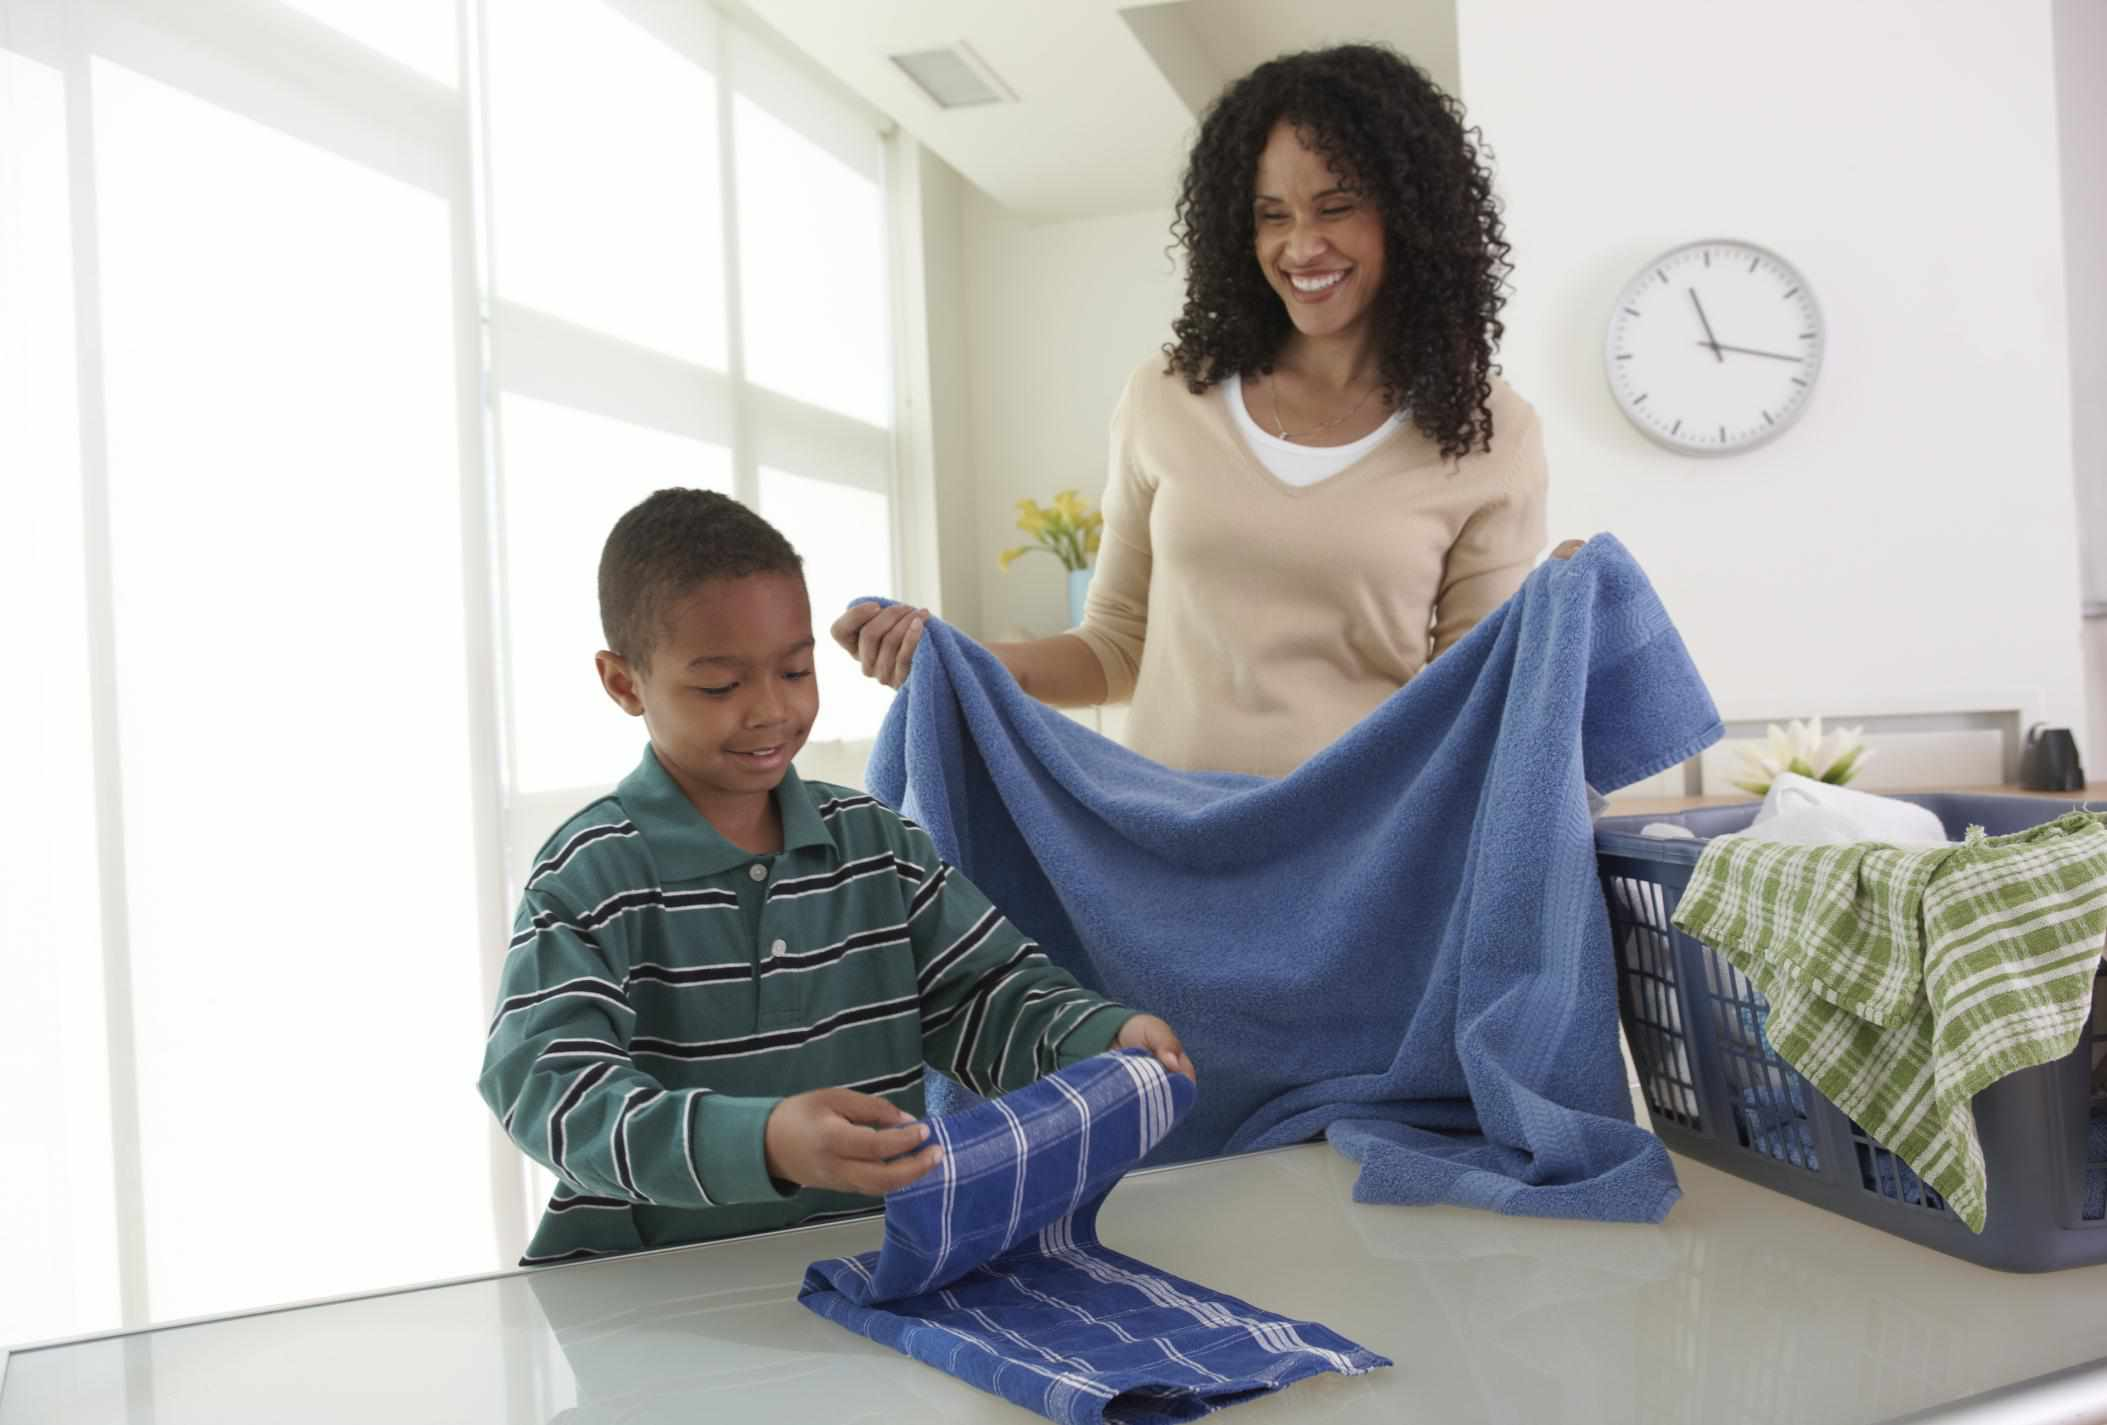 Mother and son folding laundry together